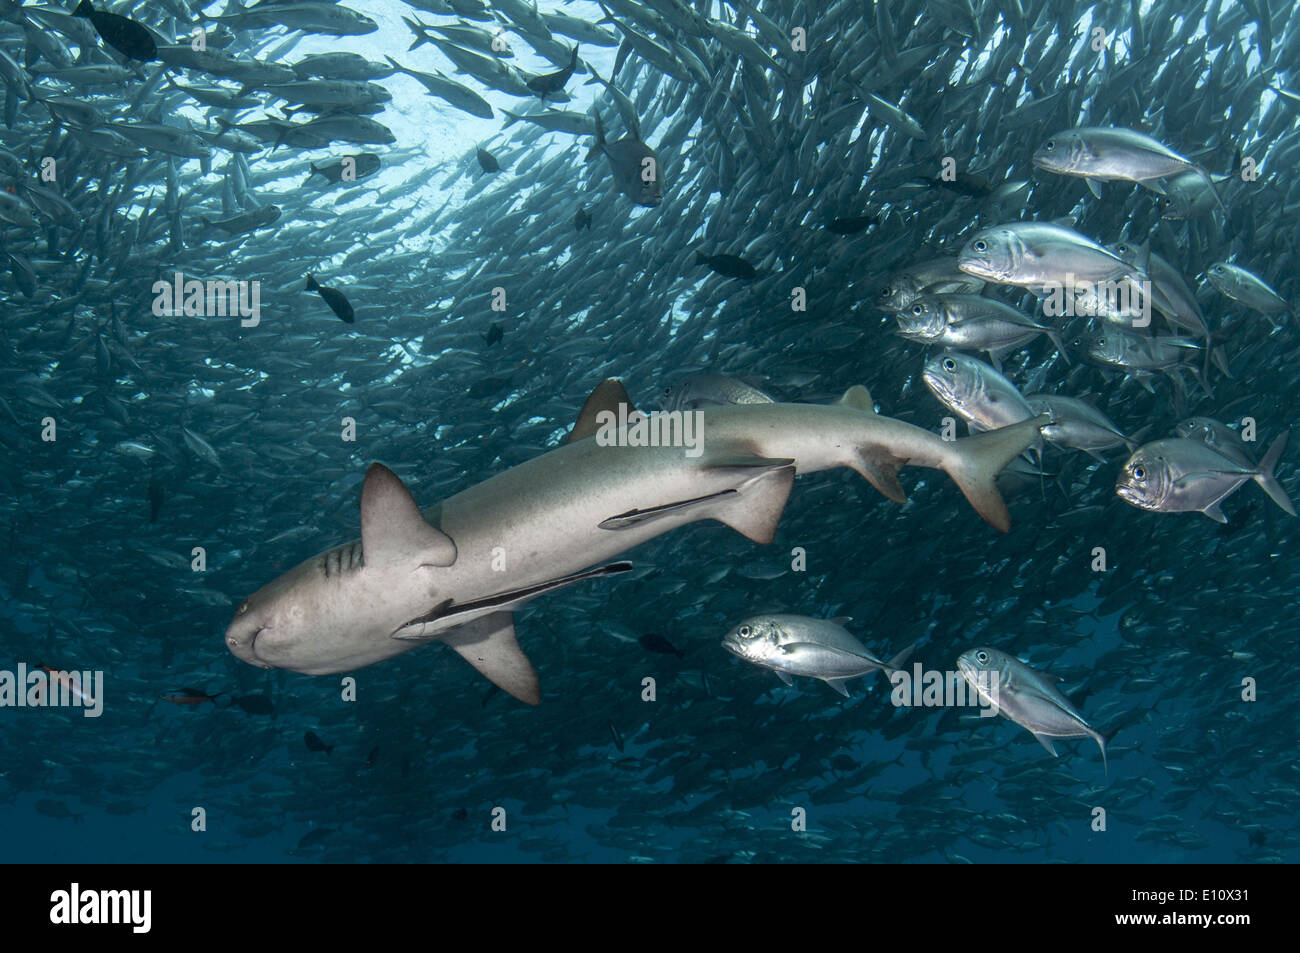 Whitetip reef shark surrounded by Big-eye Trevally (Triaenodon obesus), (Caranx sexfasciatus) - Stock Image